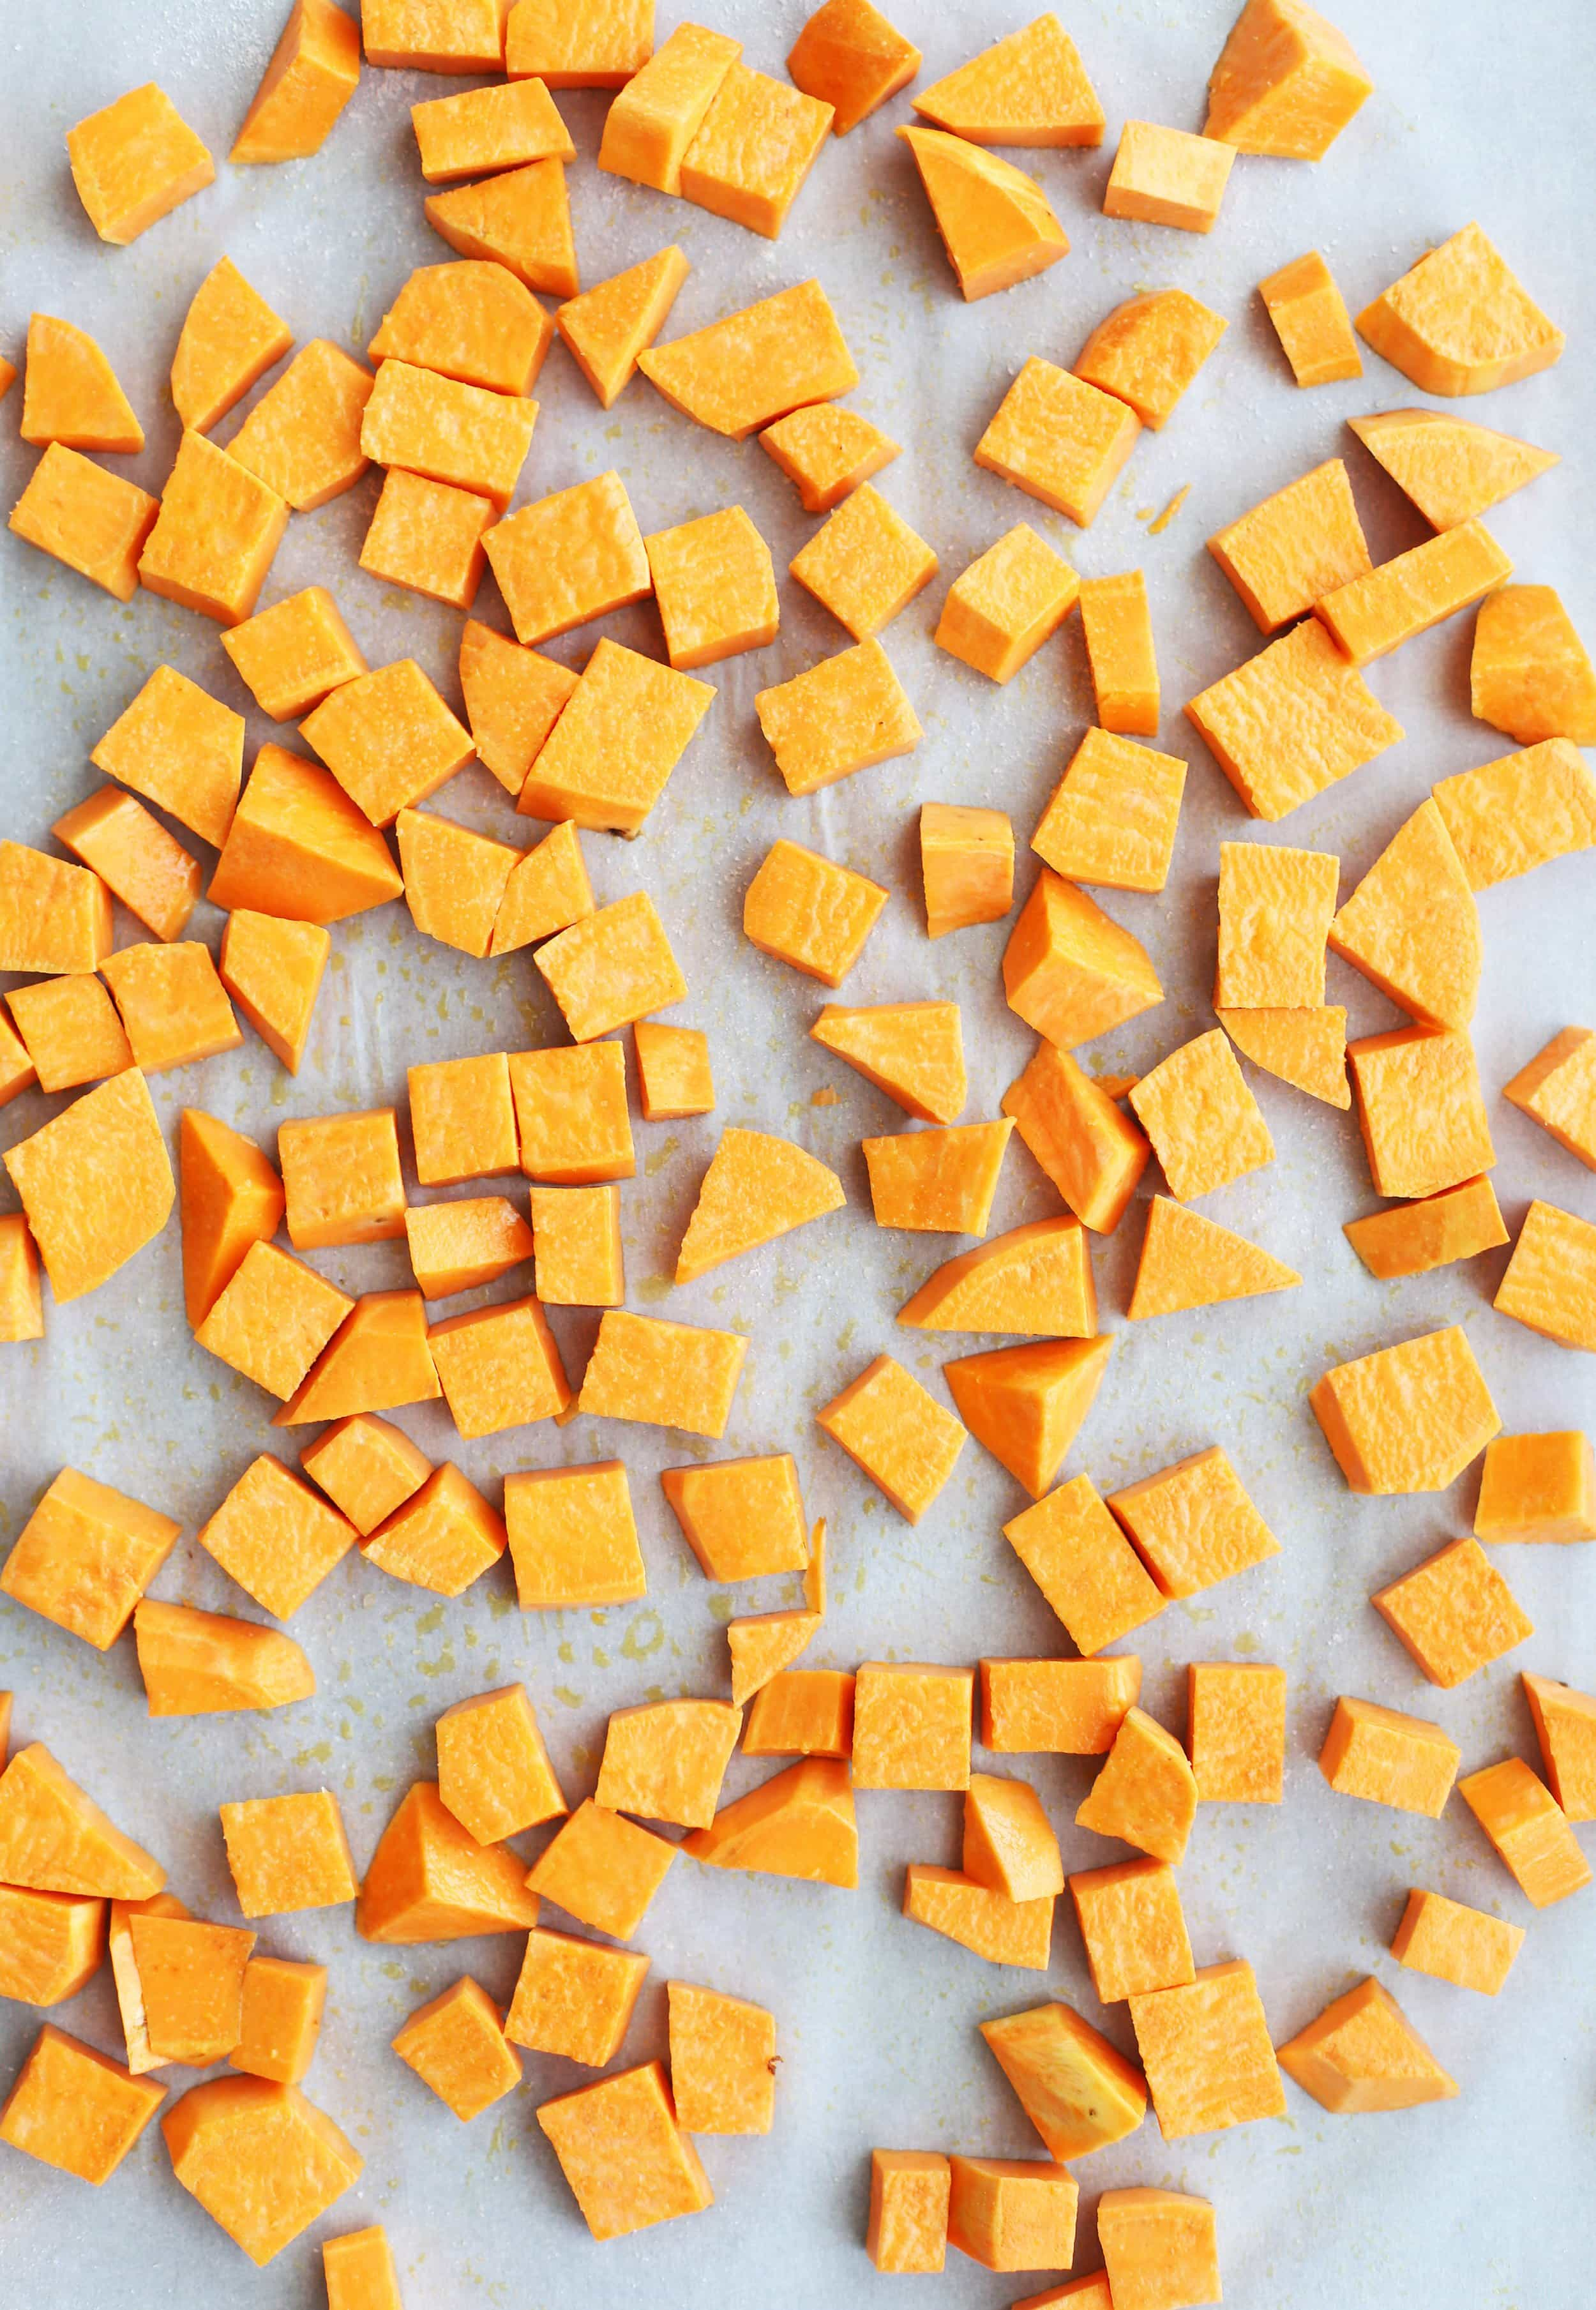 Peeled and chopped sweet potatoes on a baking sheet lined with parchment paper.